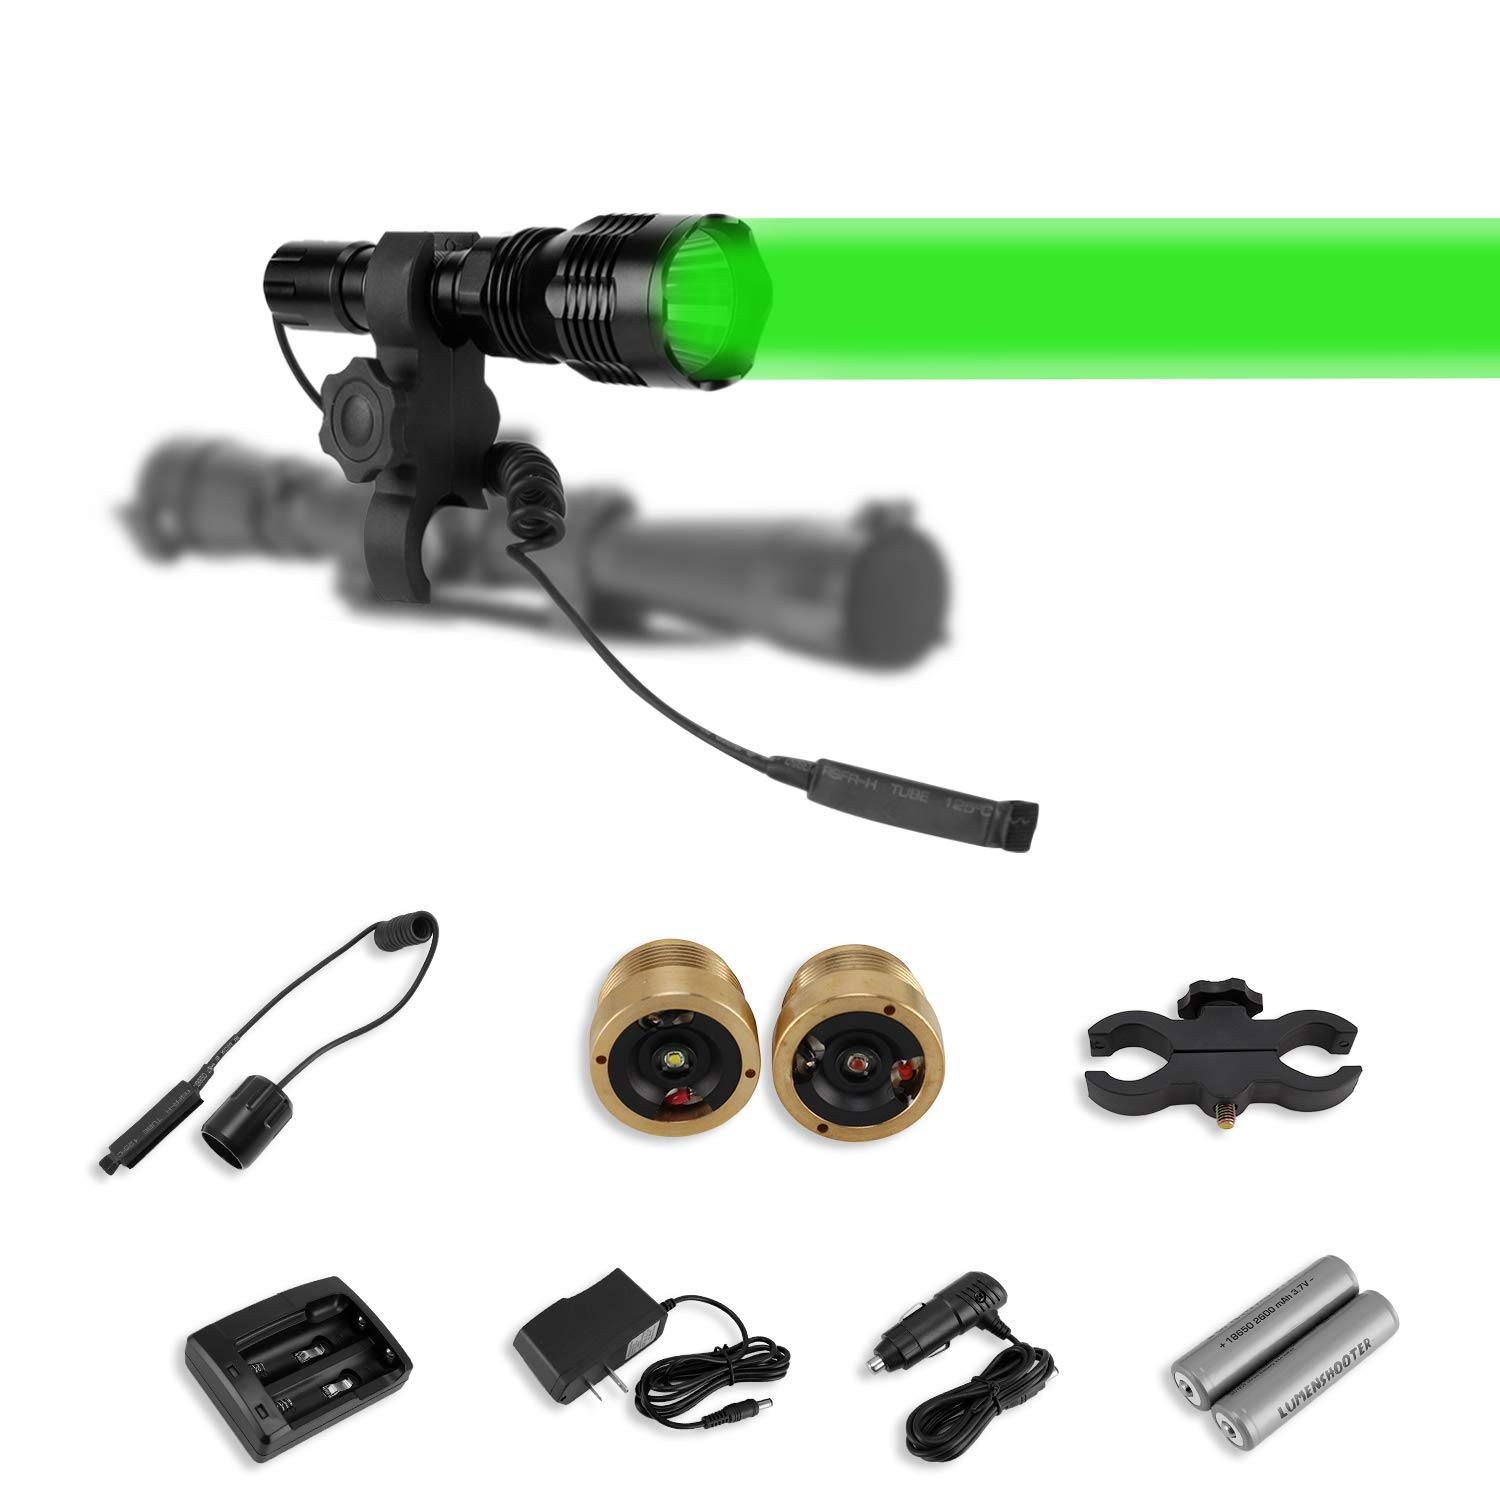 LUMENSHOOTER Long Range Cree Green Red White Hunting Kit High Power Rechargeable Scope Rifle Gun Mounted Kill Light Predator Night Torch Tactical Flashlight for Coon Coyote Hog Fox and Varmint by LUMENSHOOTER